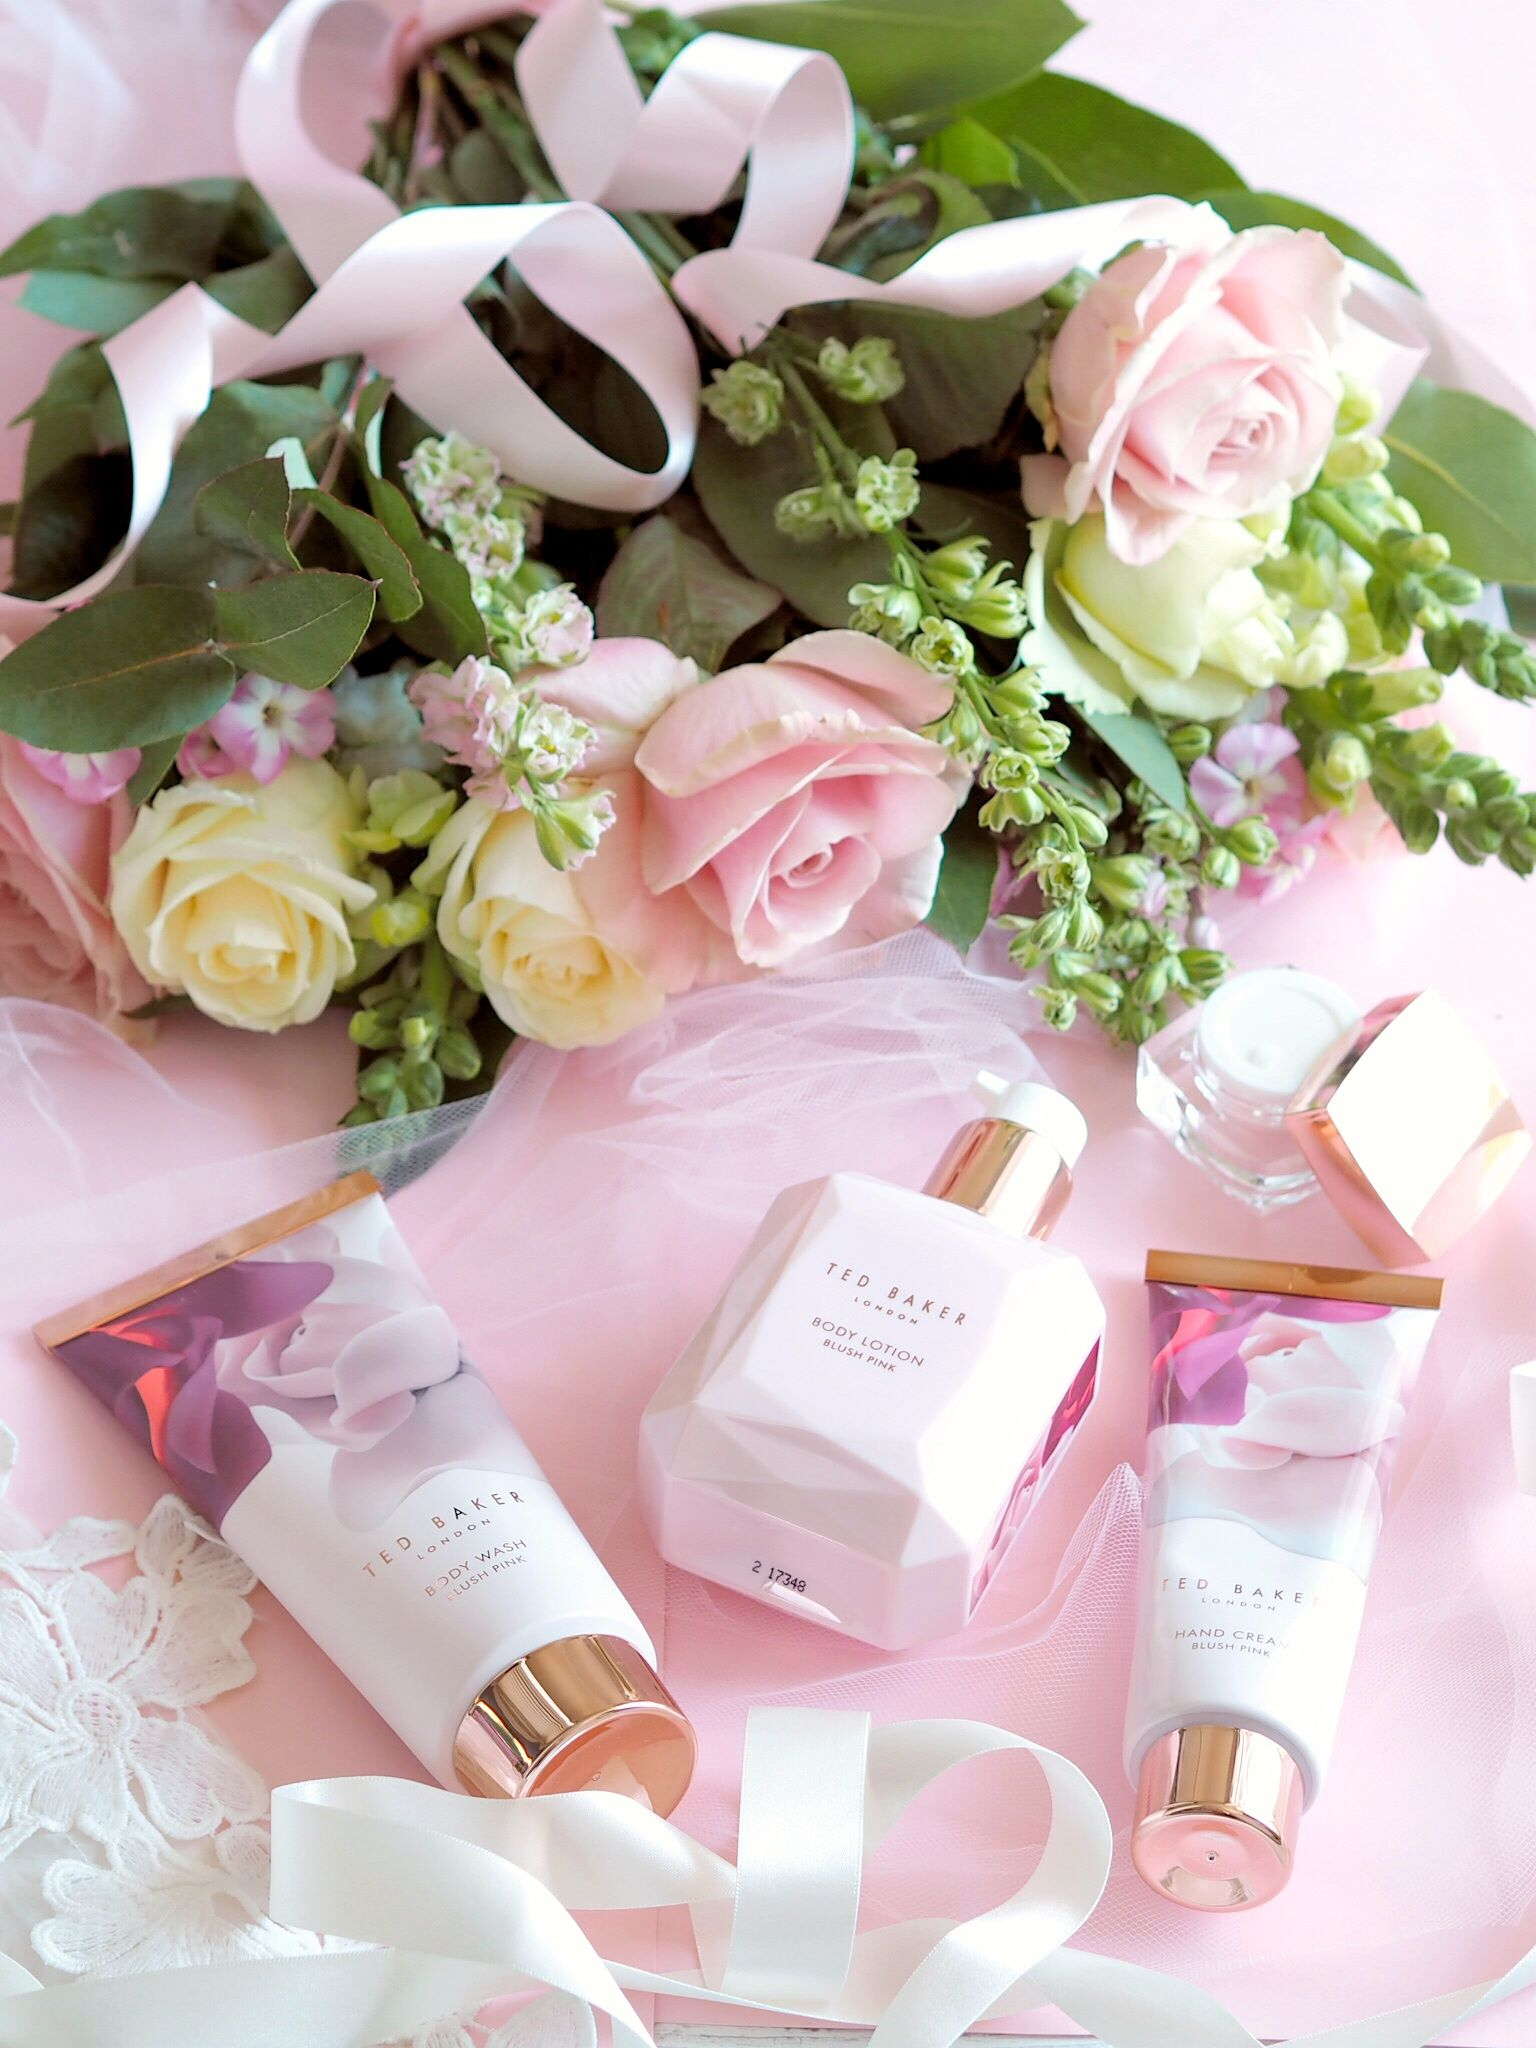 Special Gift Ideas For Mother's Day, Gift Guide, Ted Baker Blush Bouquet Gift Set | Love Catherine